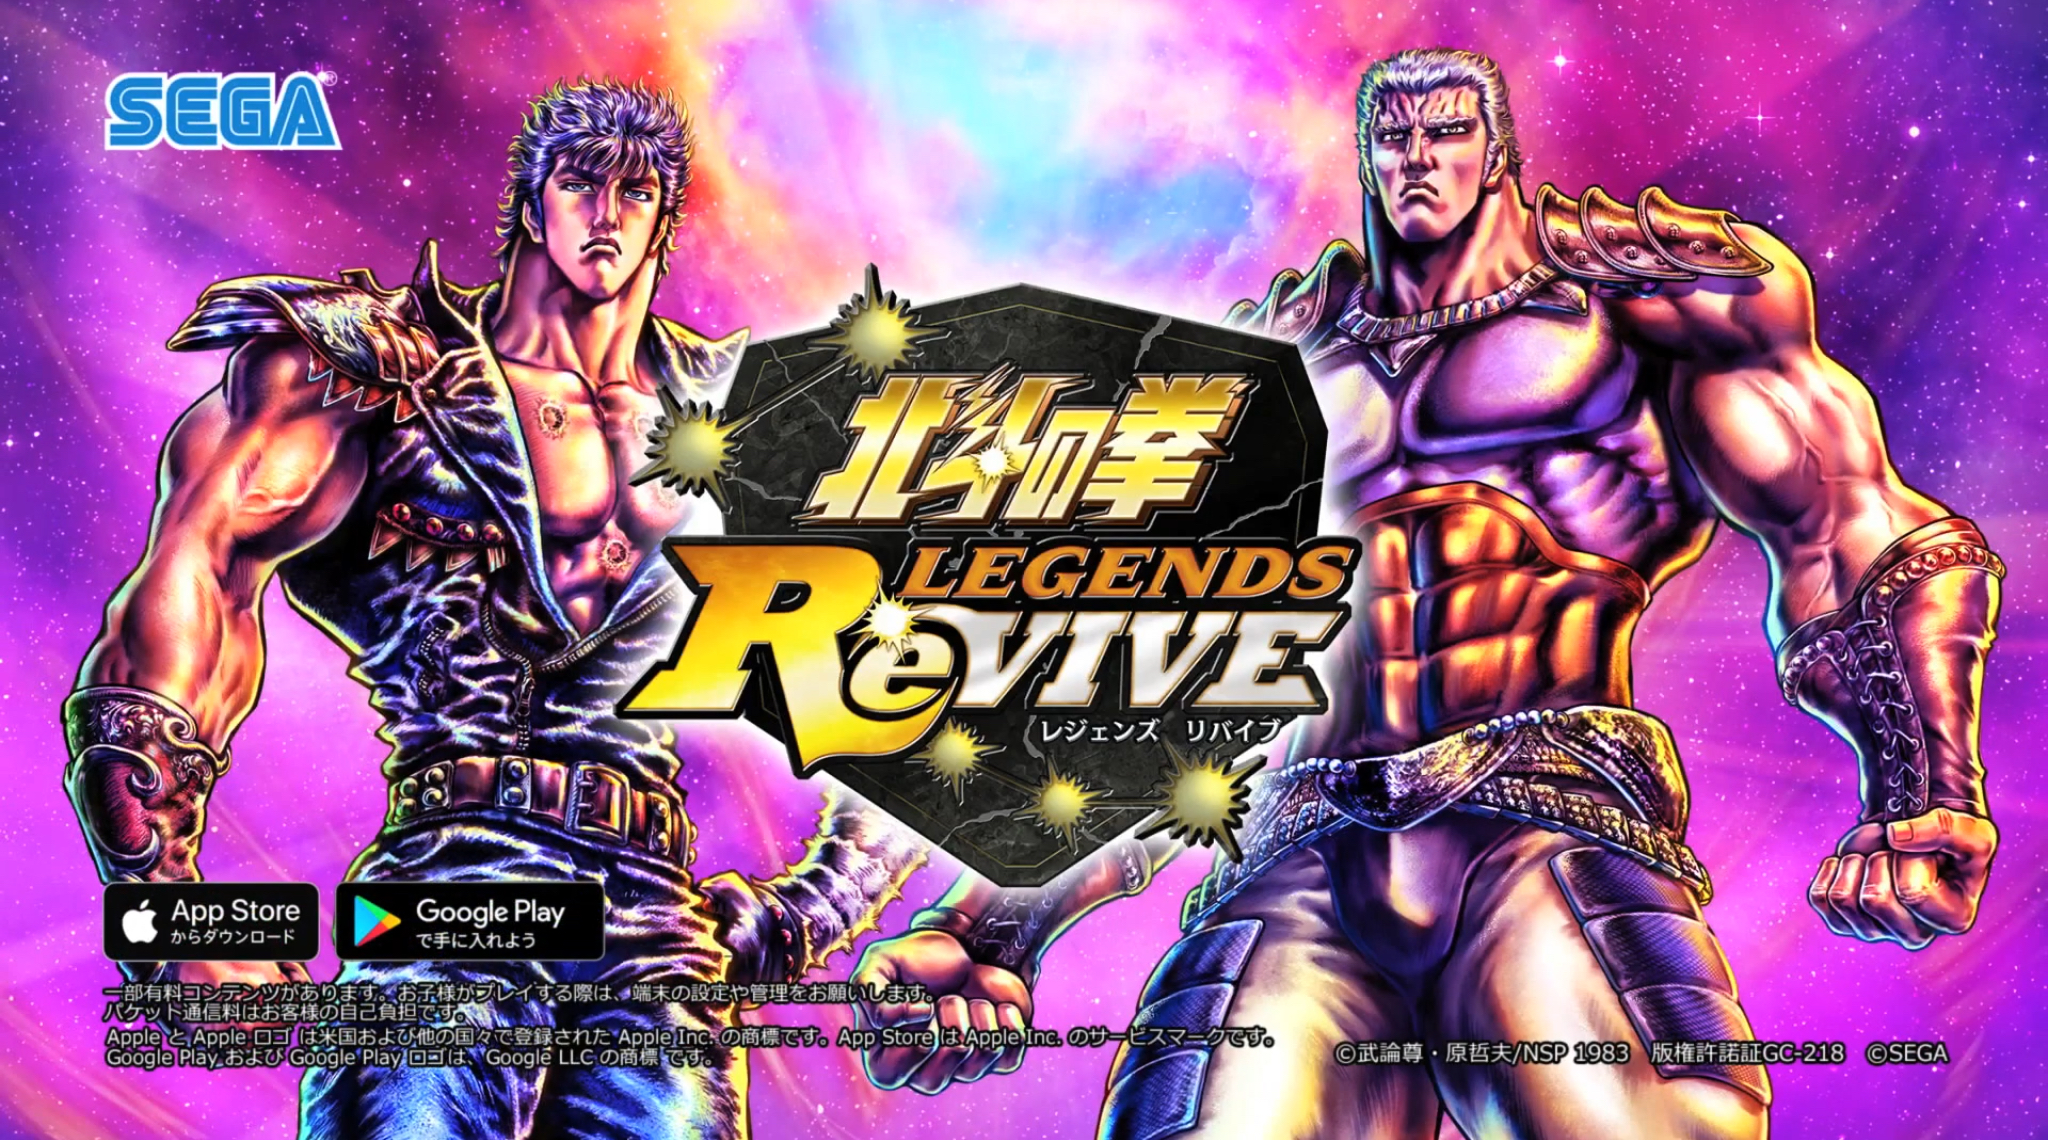 Fist of the North Star: Legends ReVIVE' from SEGA Is Now